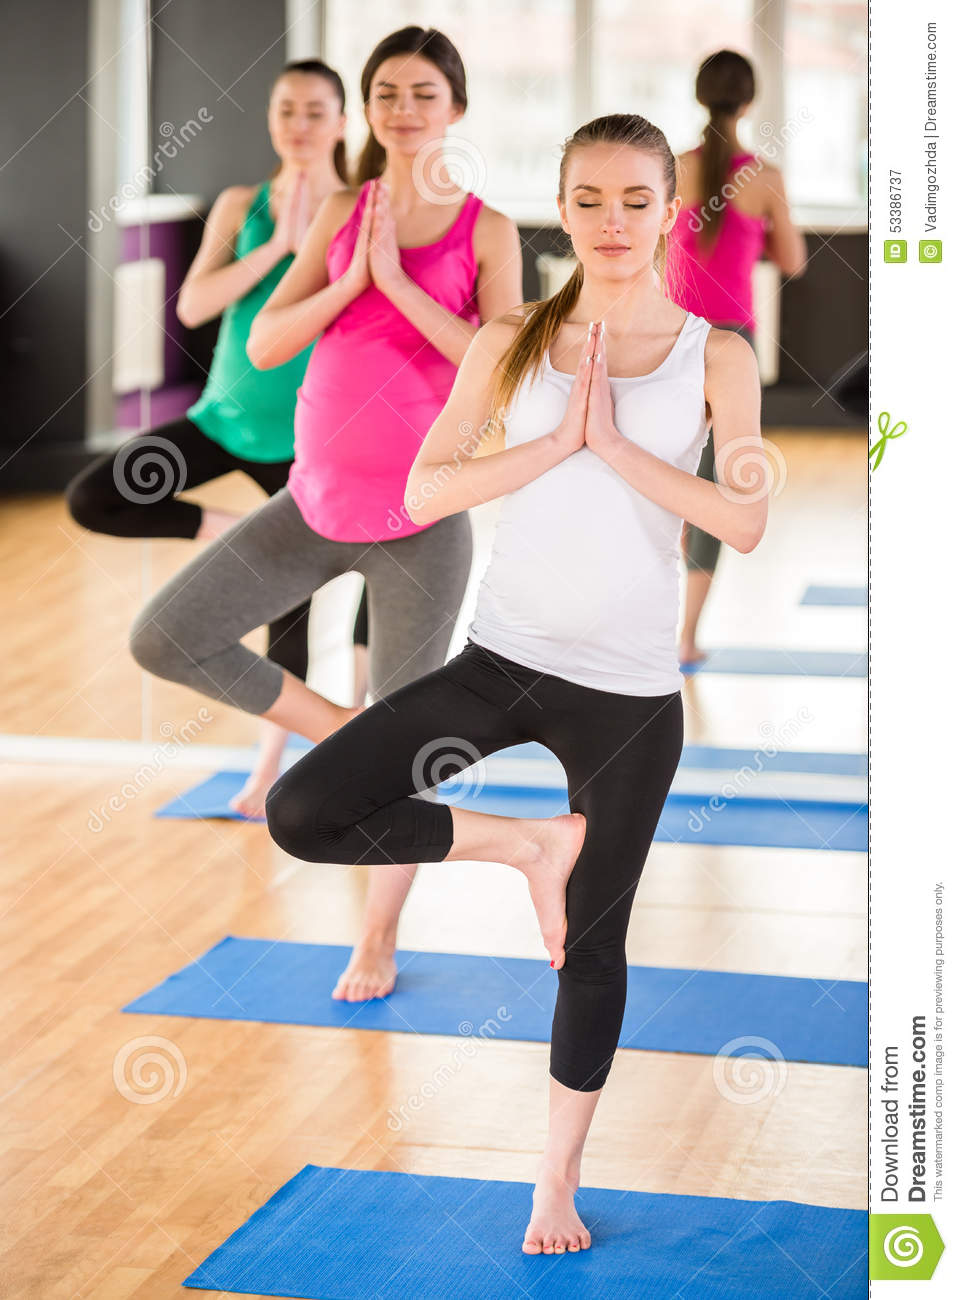 Pregnant Women At Gym. Stock Photo